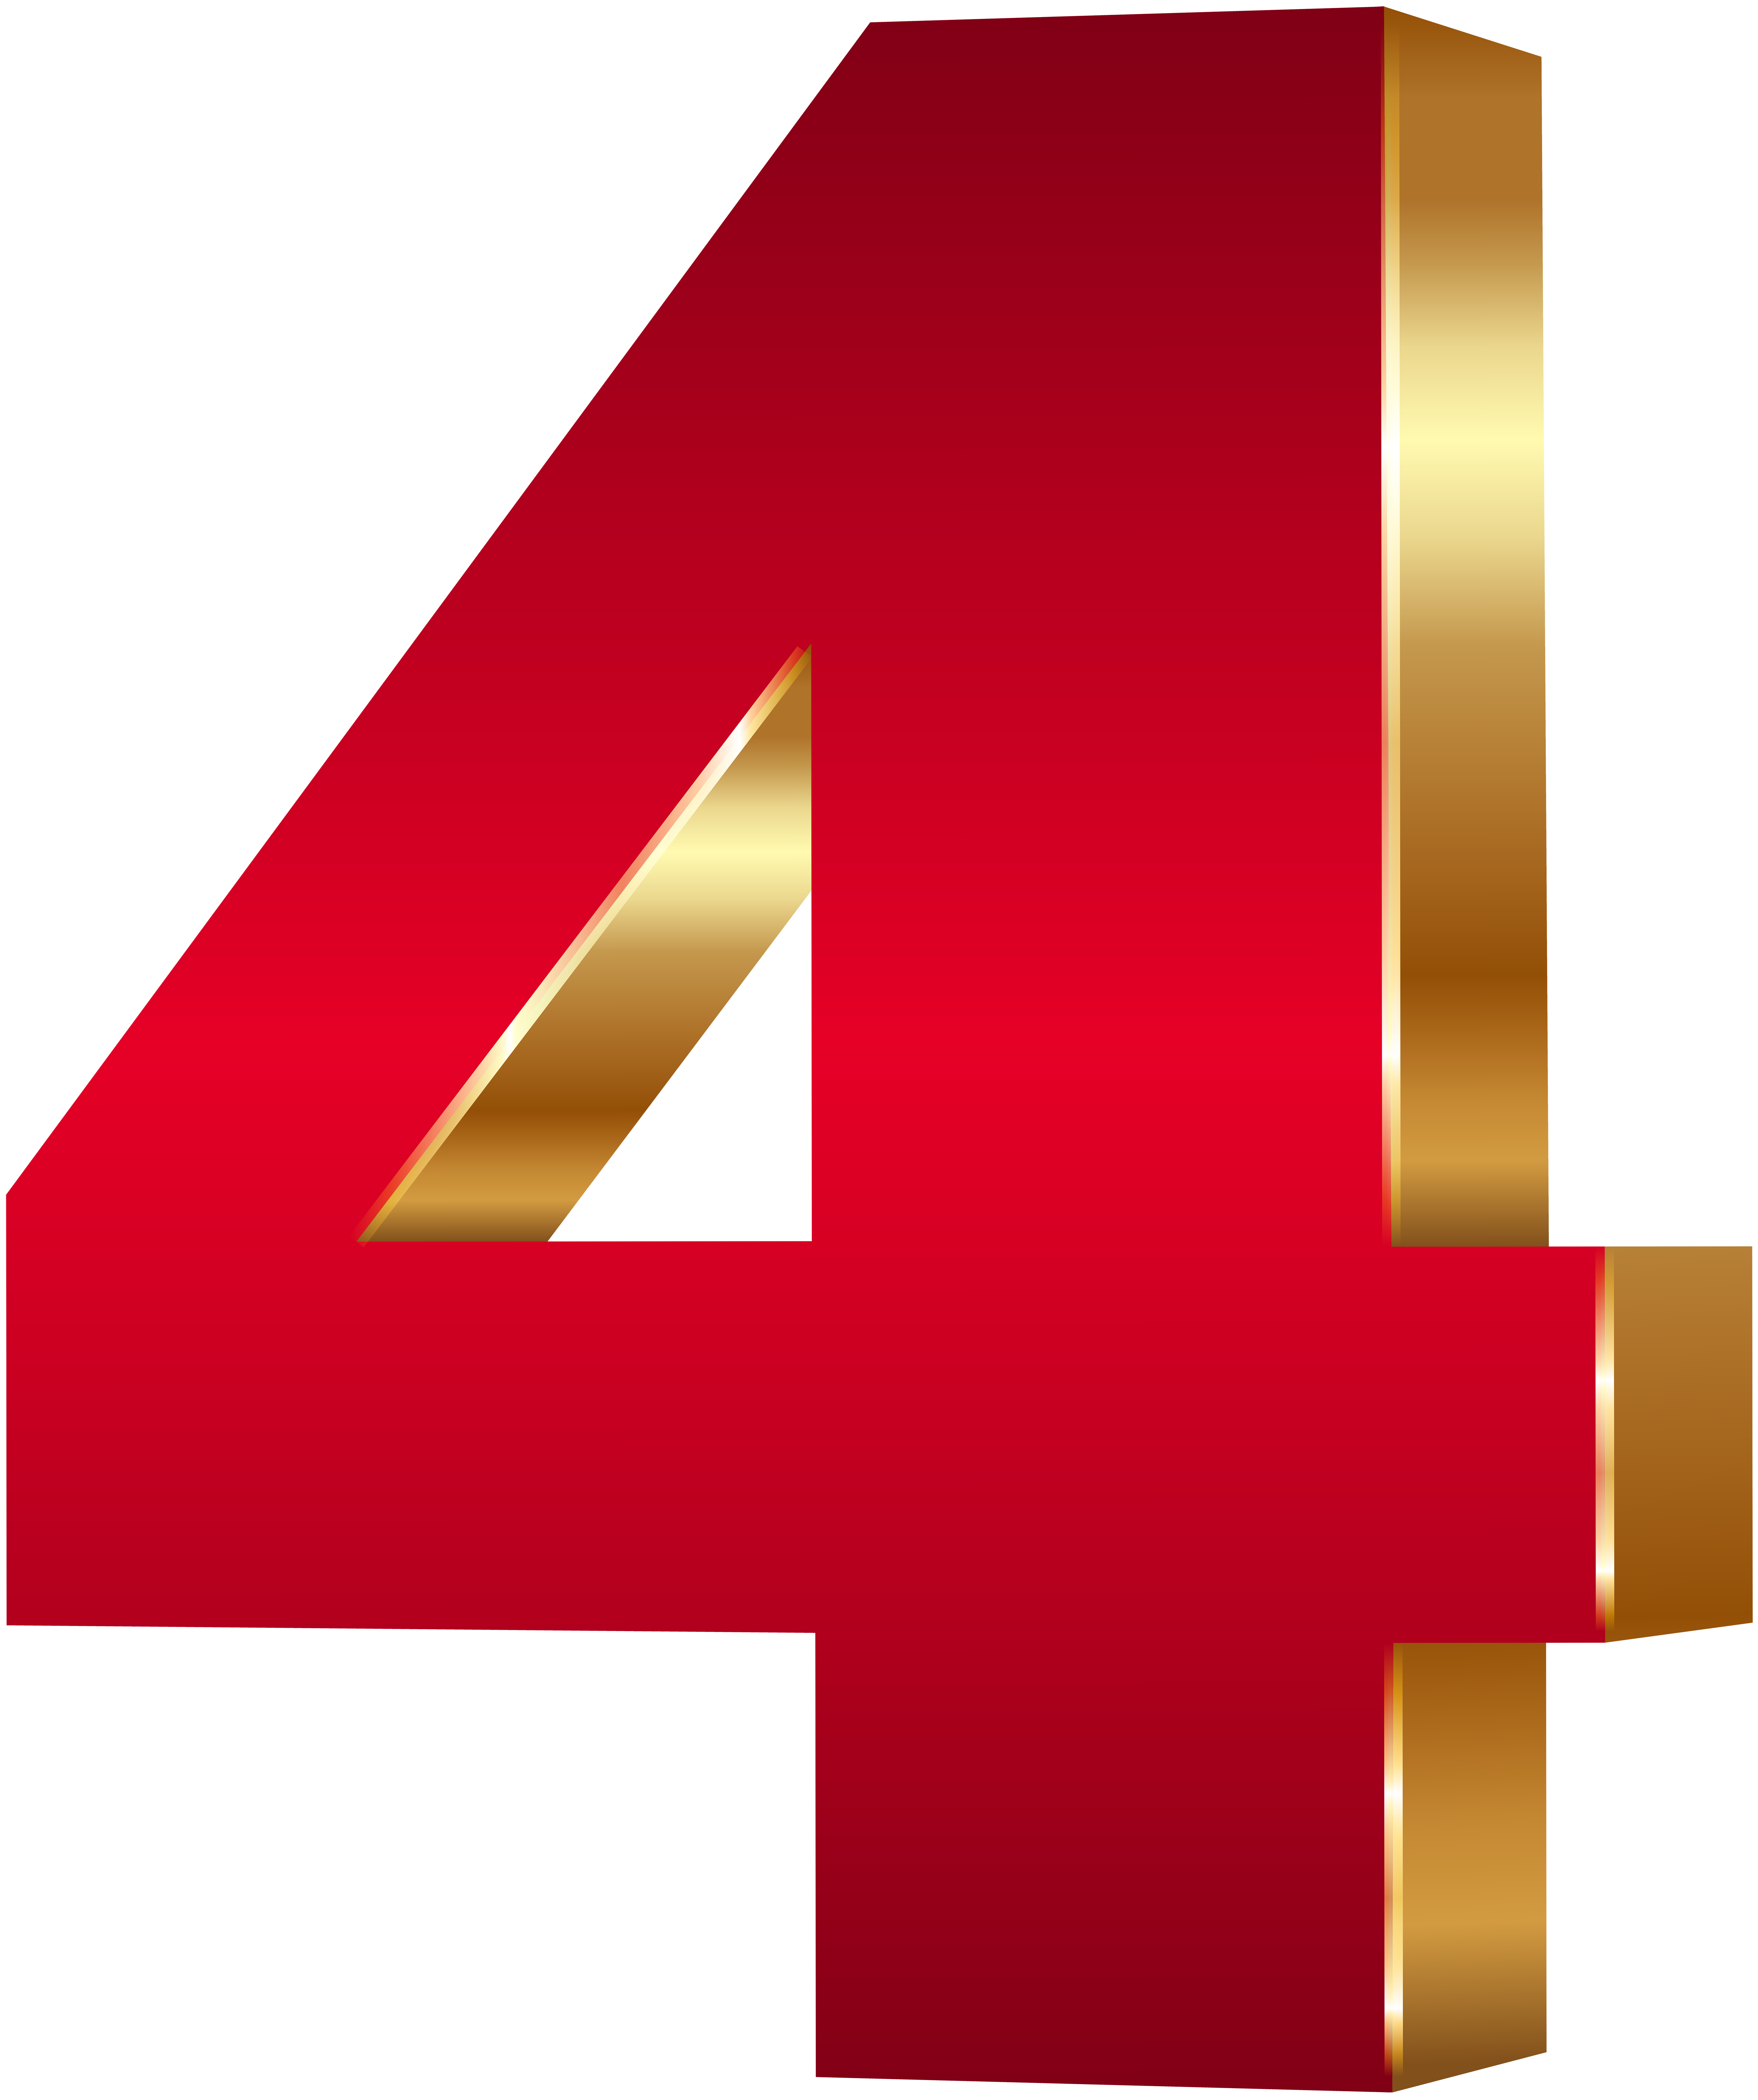 Four clipart.  d number red